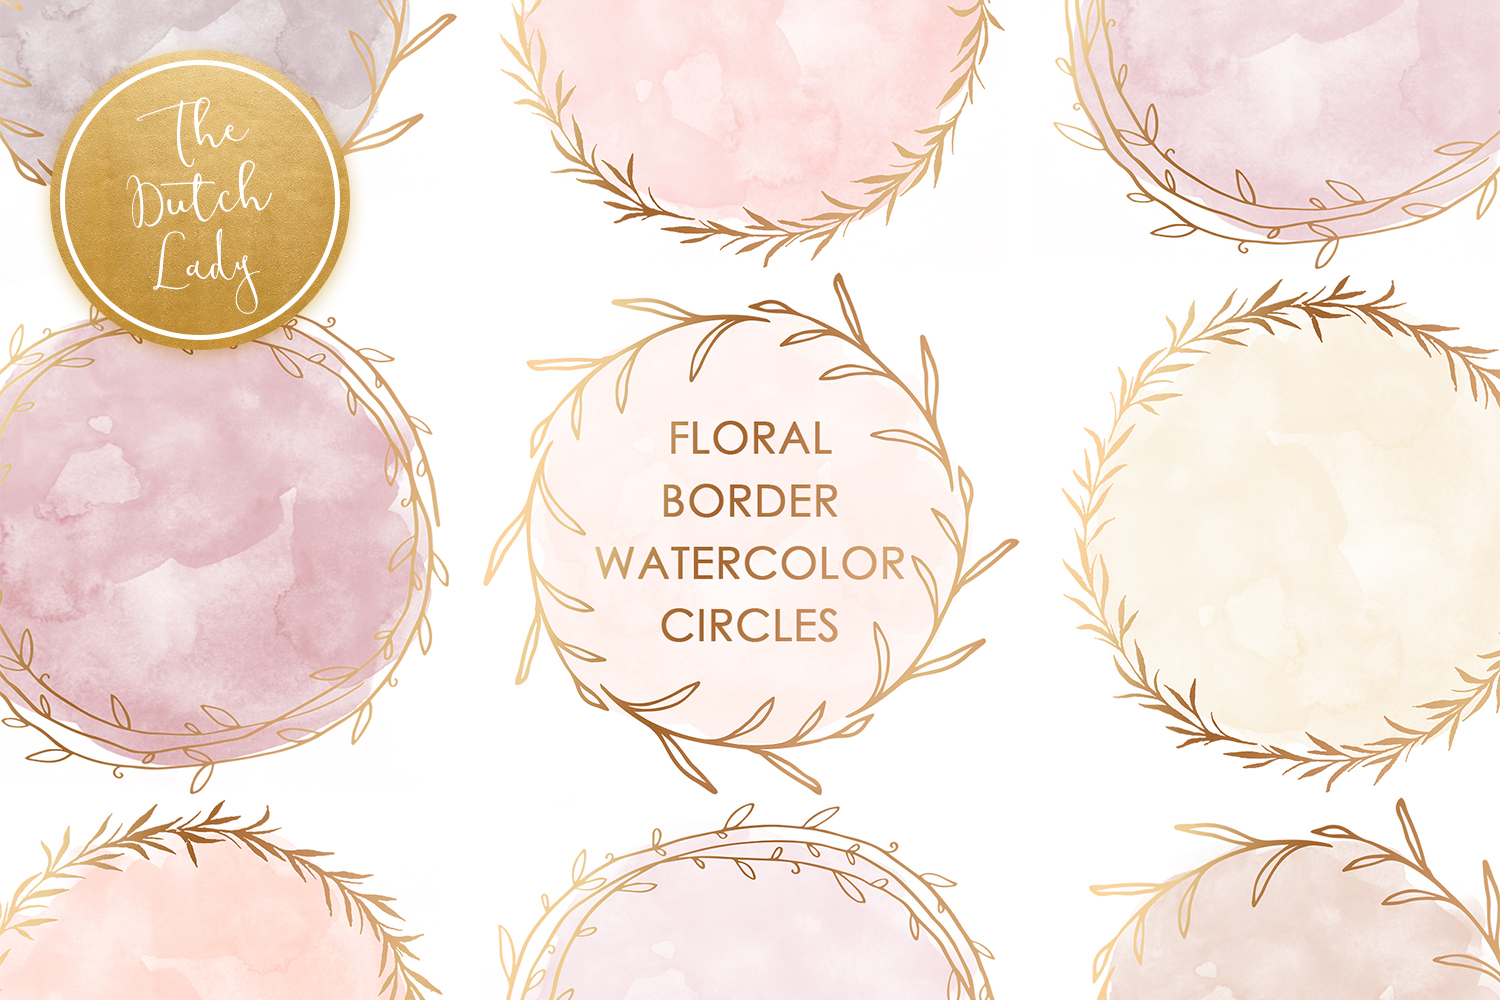 Watercolor Circle Floral Border Clipart Graphic By